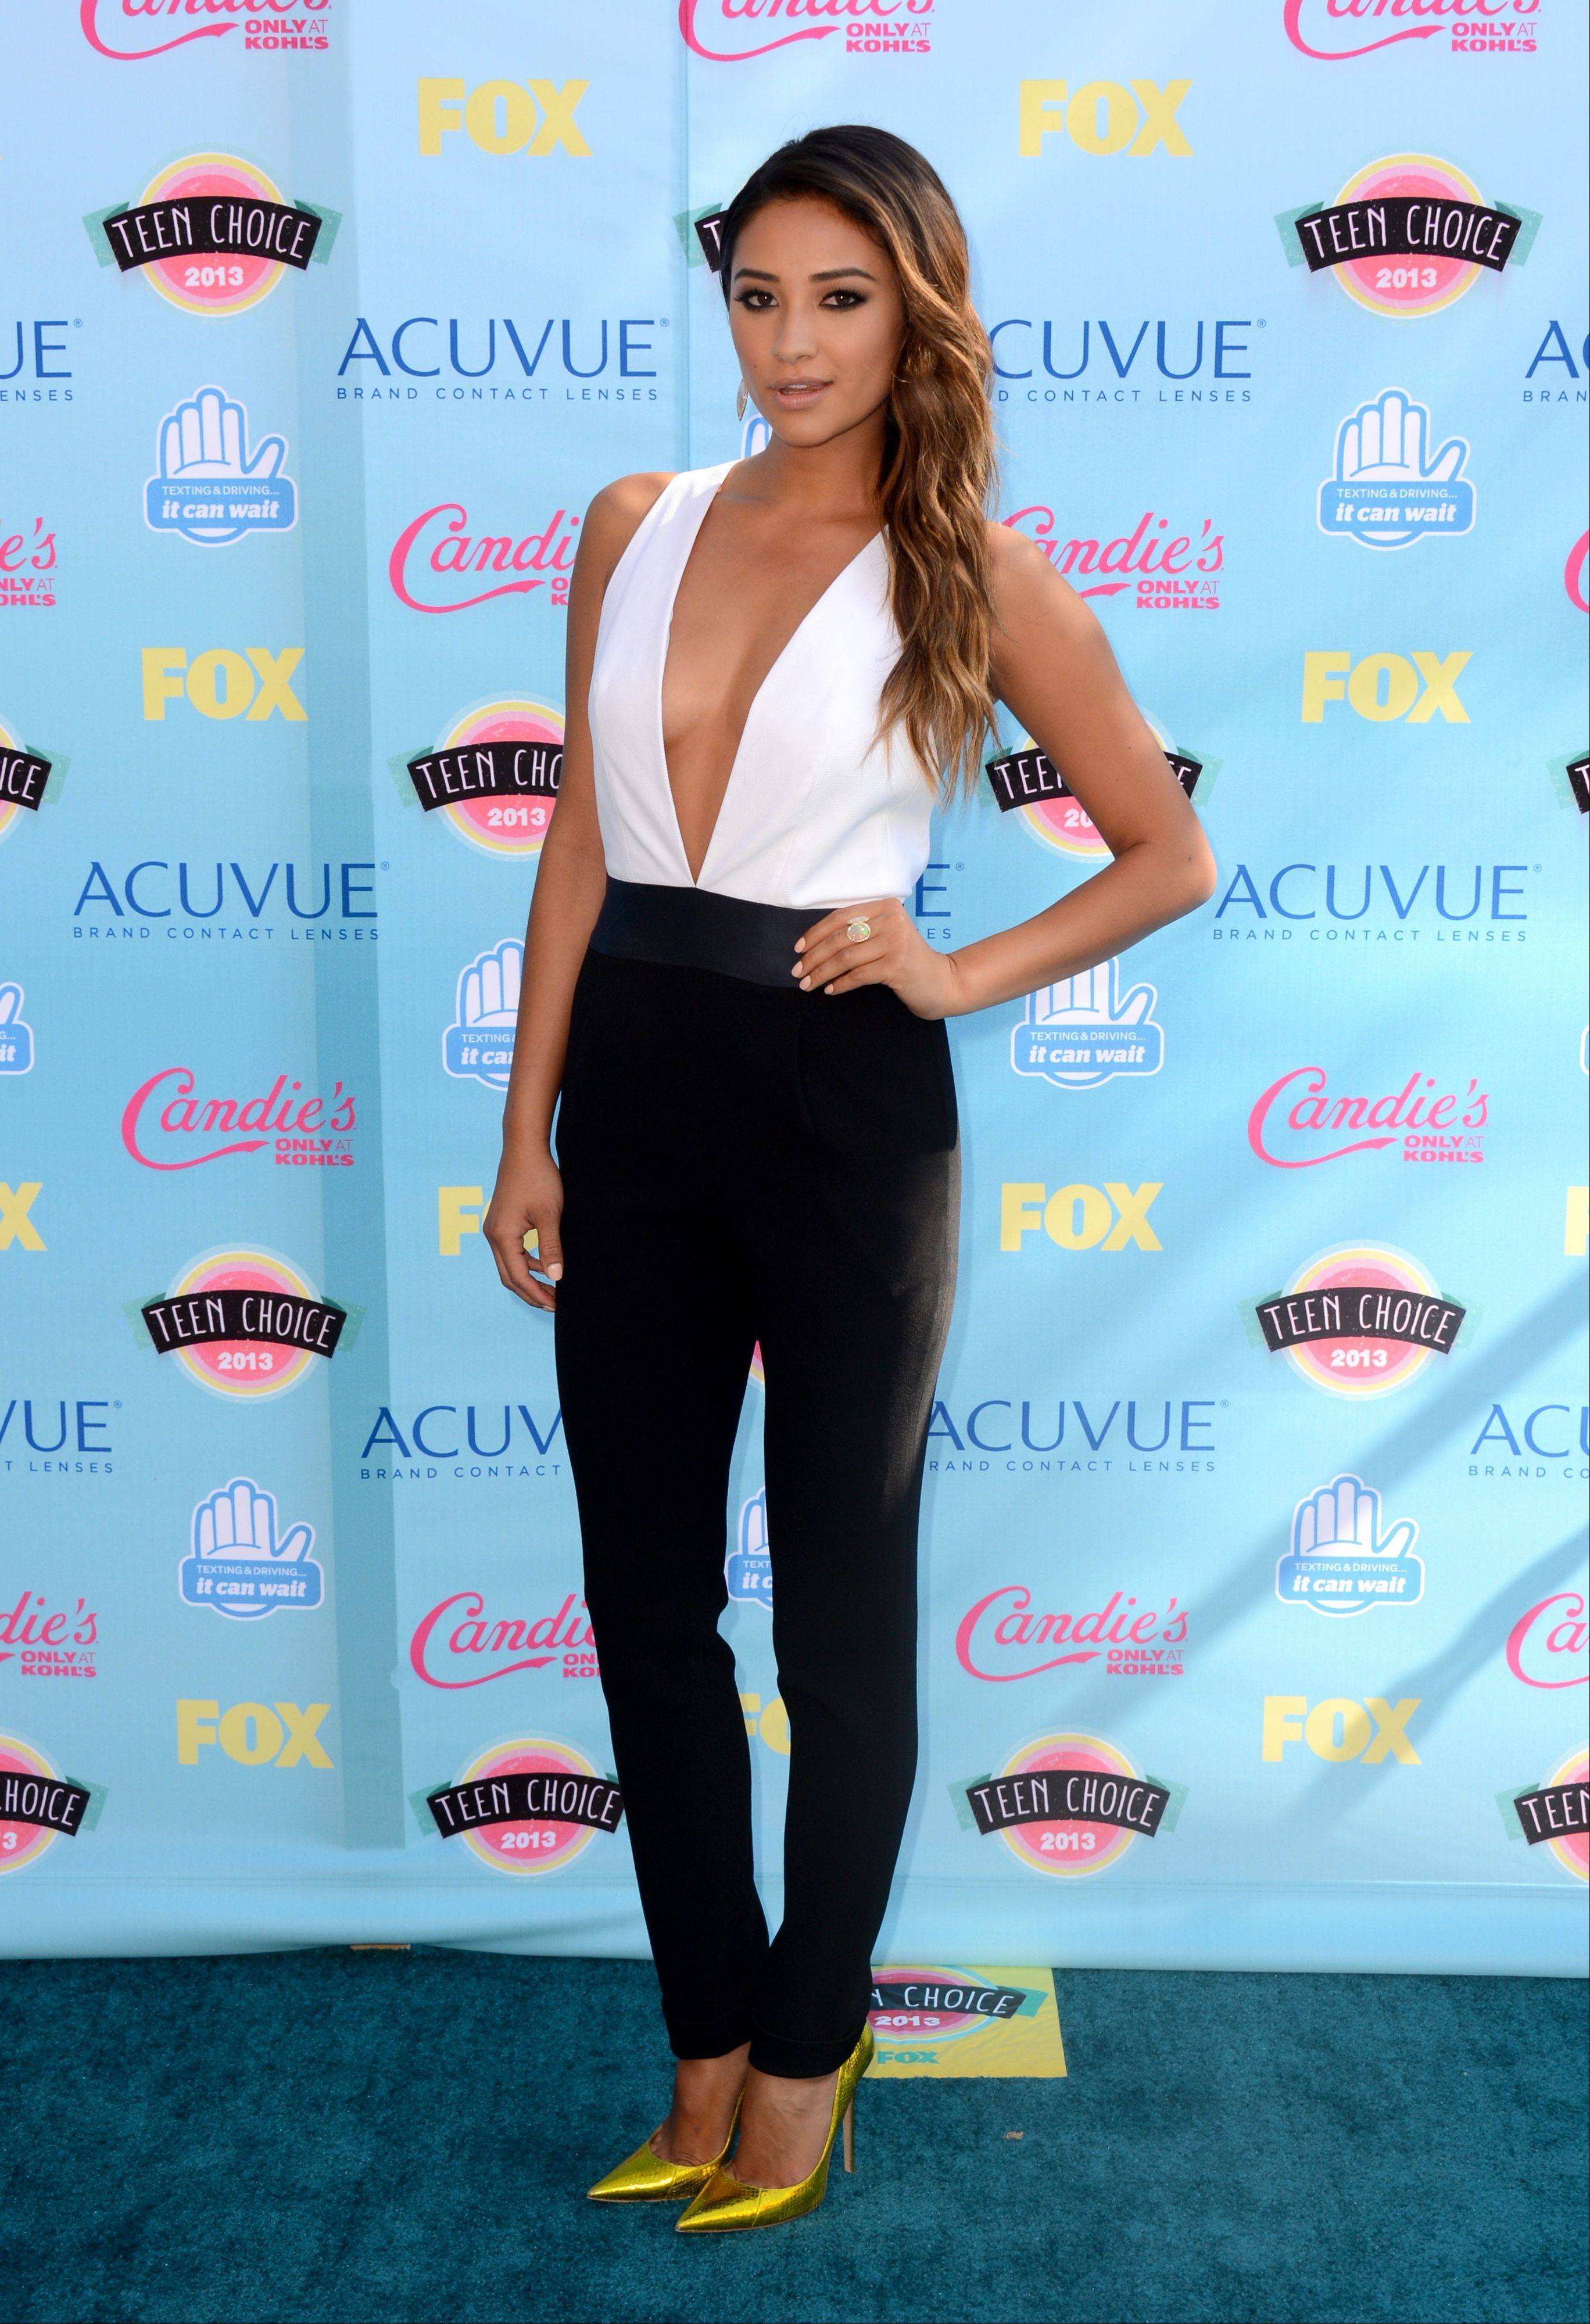 """Pretty Little Liars"" star Shay Mitchell arrives at the Teen Choice Awards at the Gibson Amphitheater on Sunday in Los Angeles."